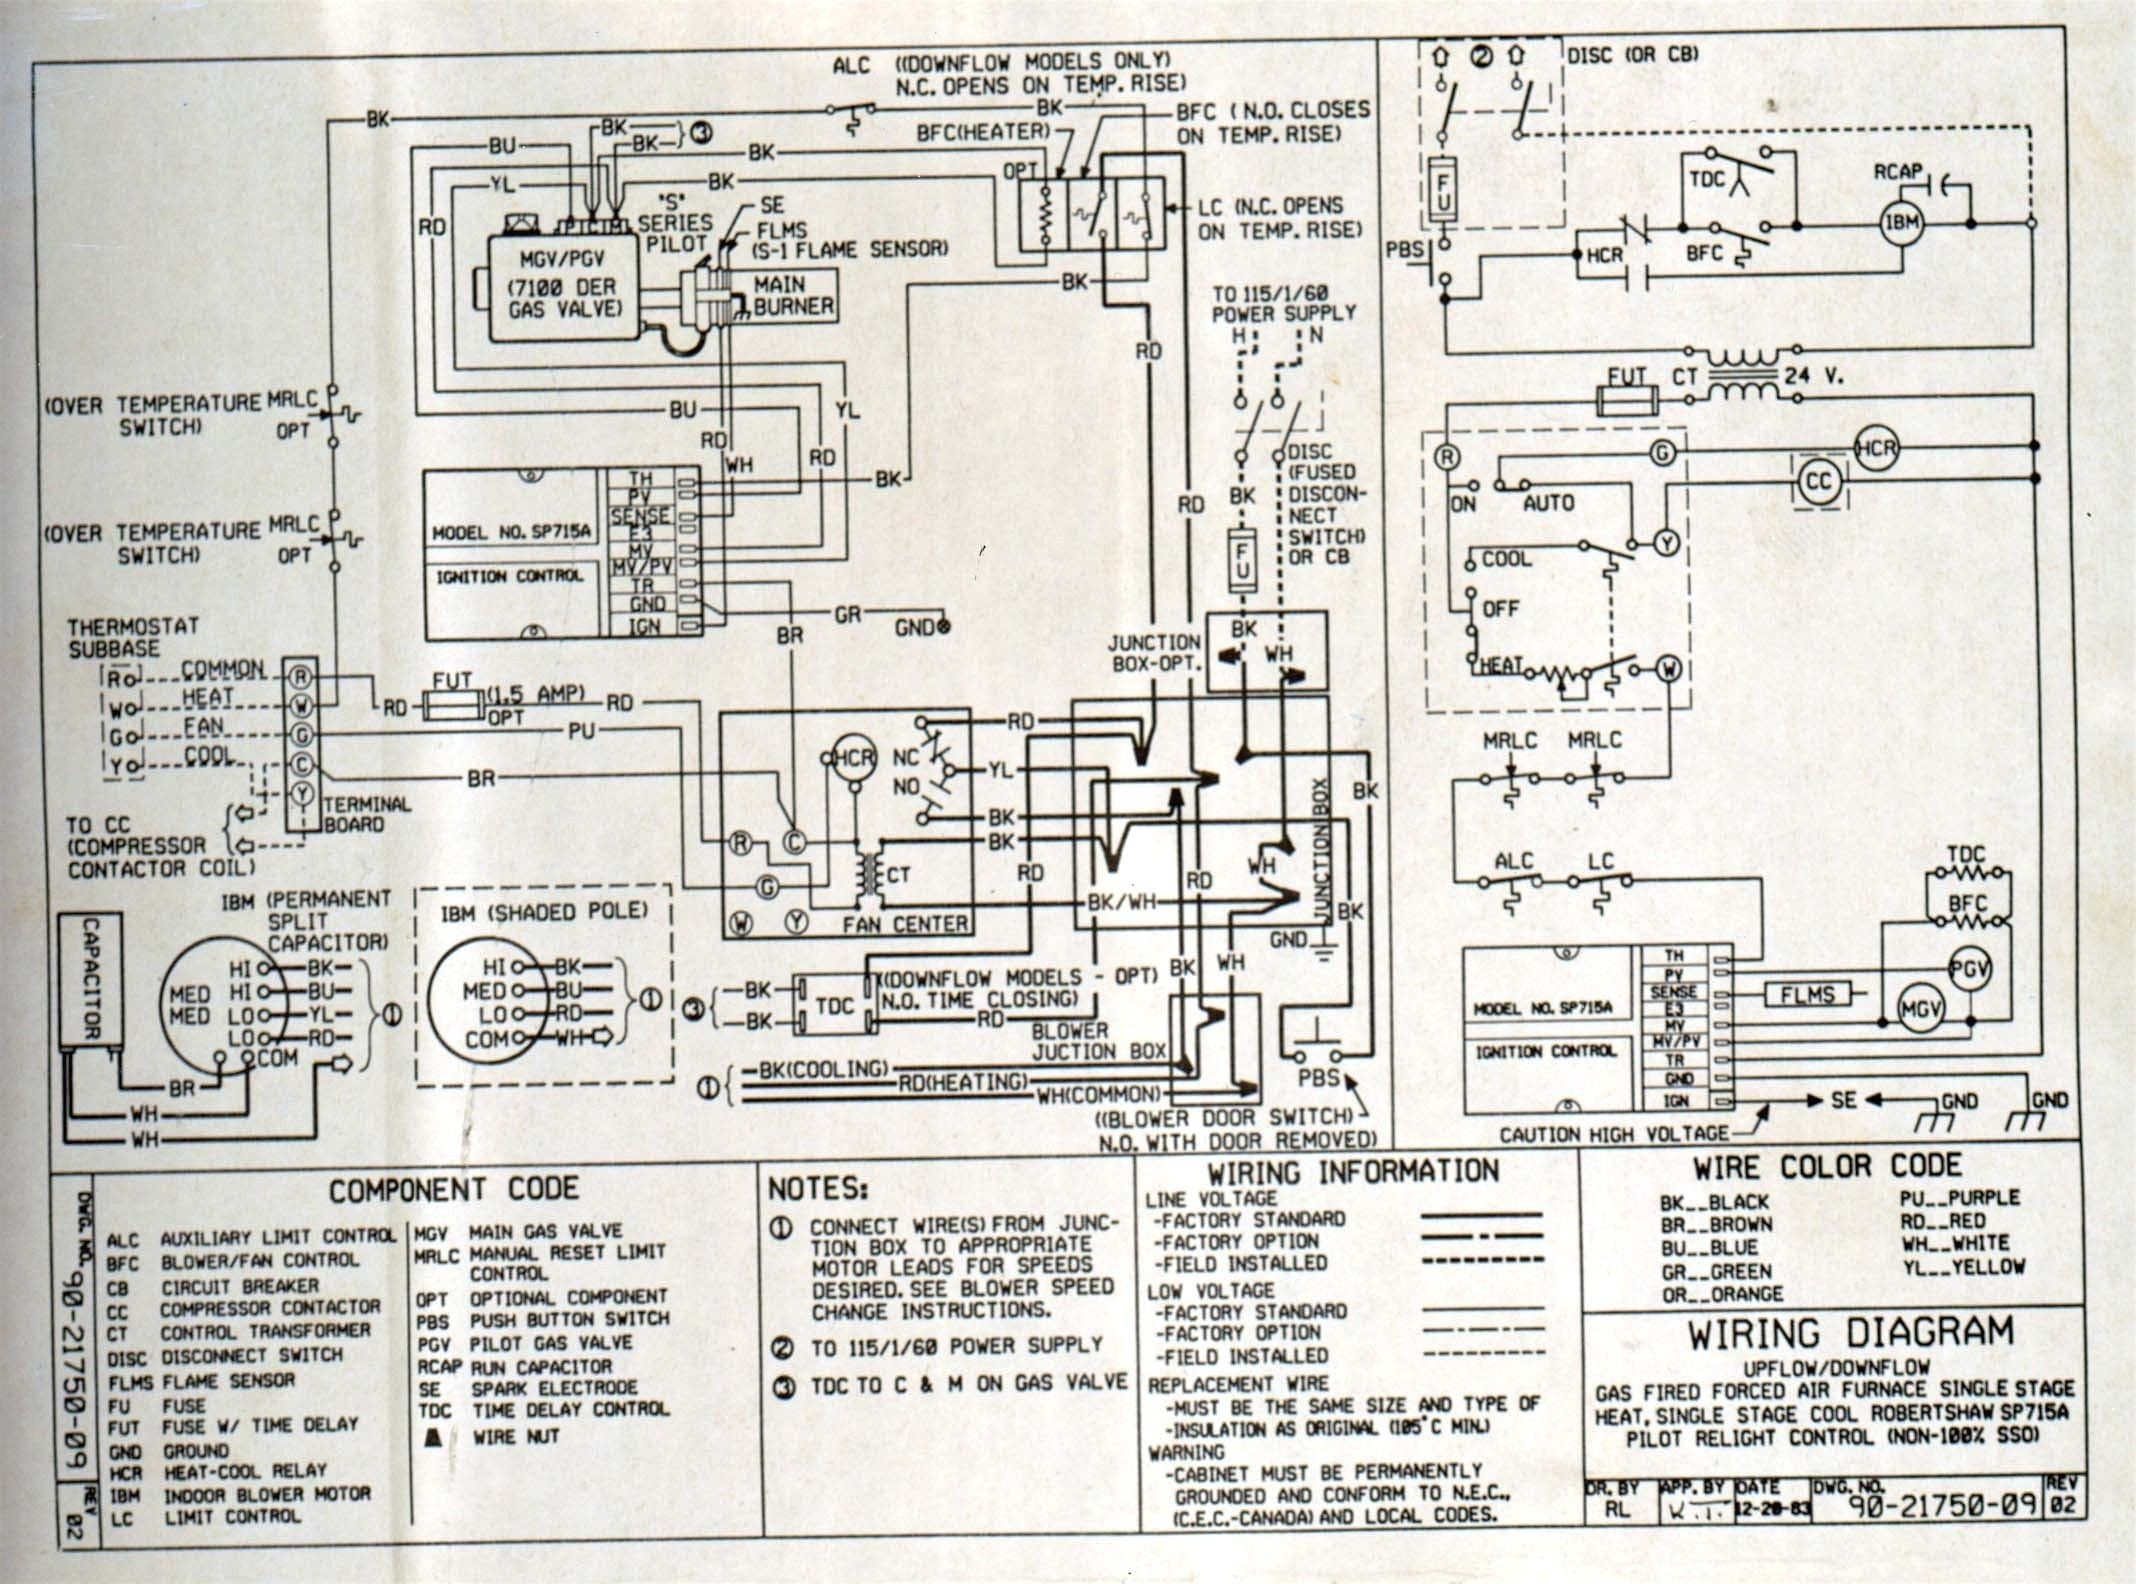 goodman gas furnace wiring diagram free wiring diagram goodman electric  furnace wiring diagram goodman gas furnace